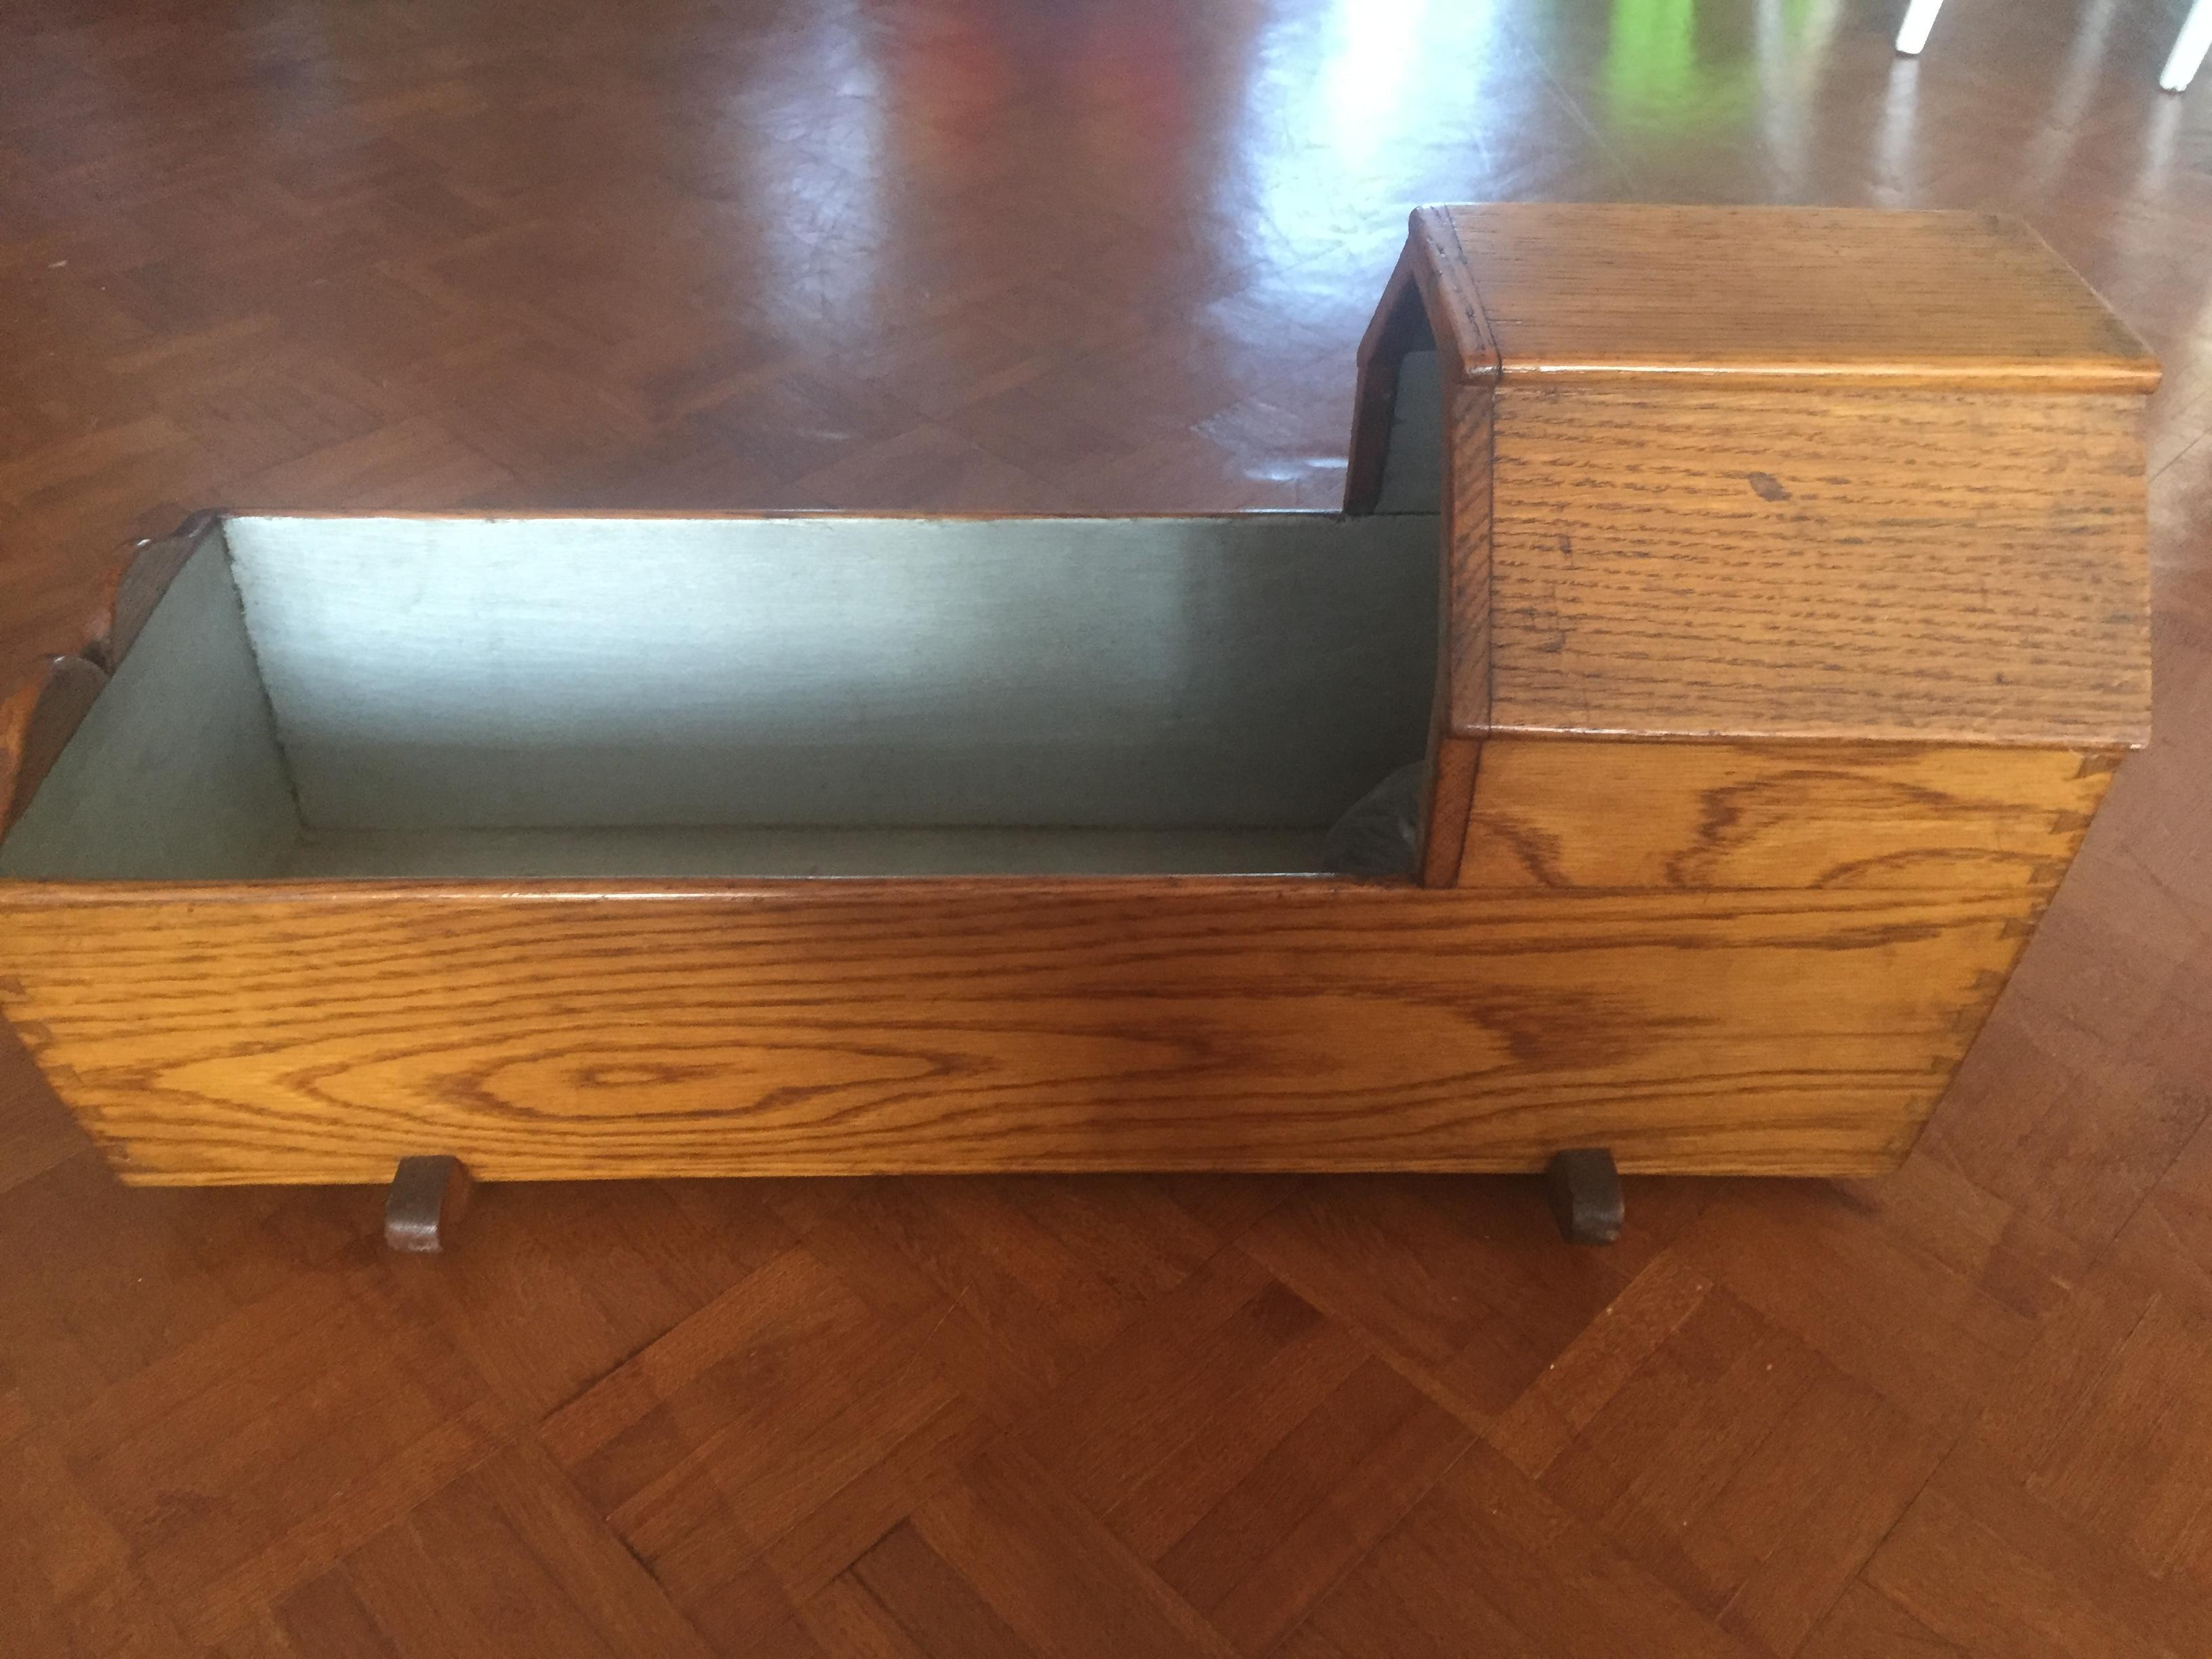 Doll's COT - handmade, no nails, 100 years old. Calls only